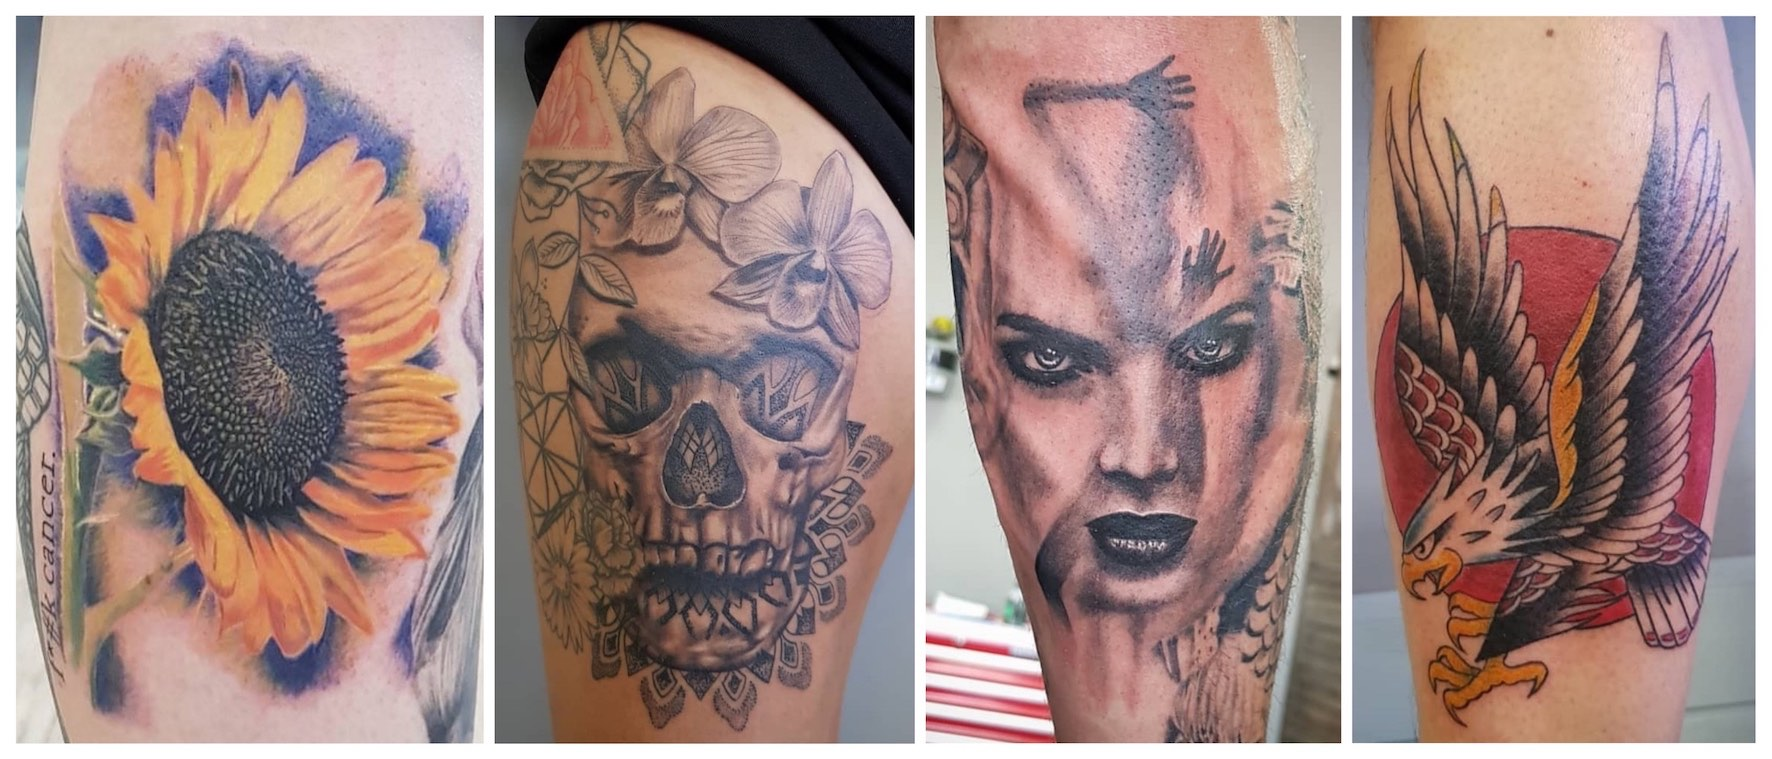 A selection of tattoos down by Tony Barcelos